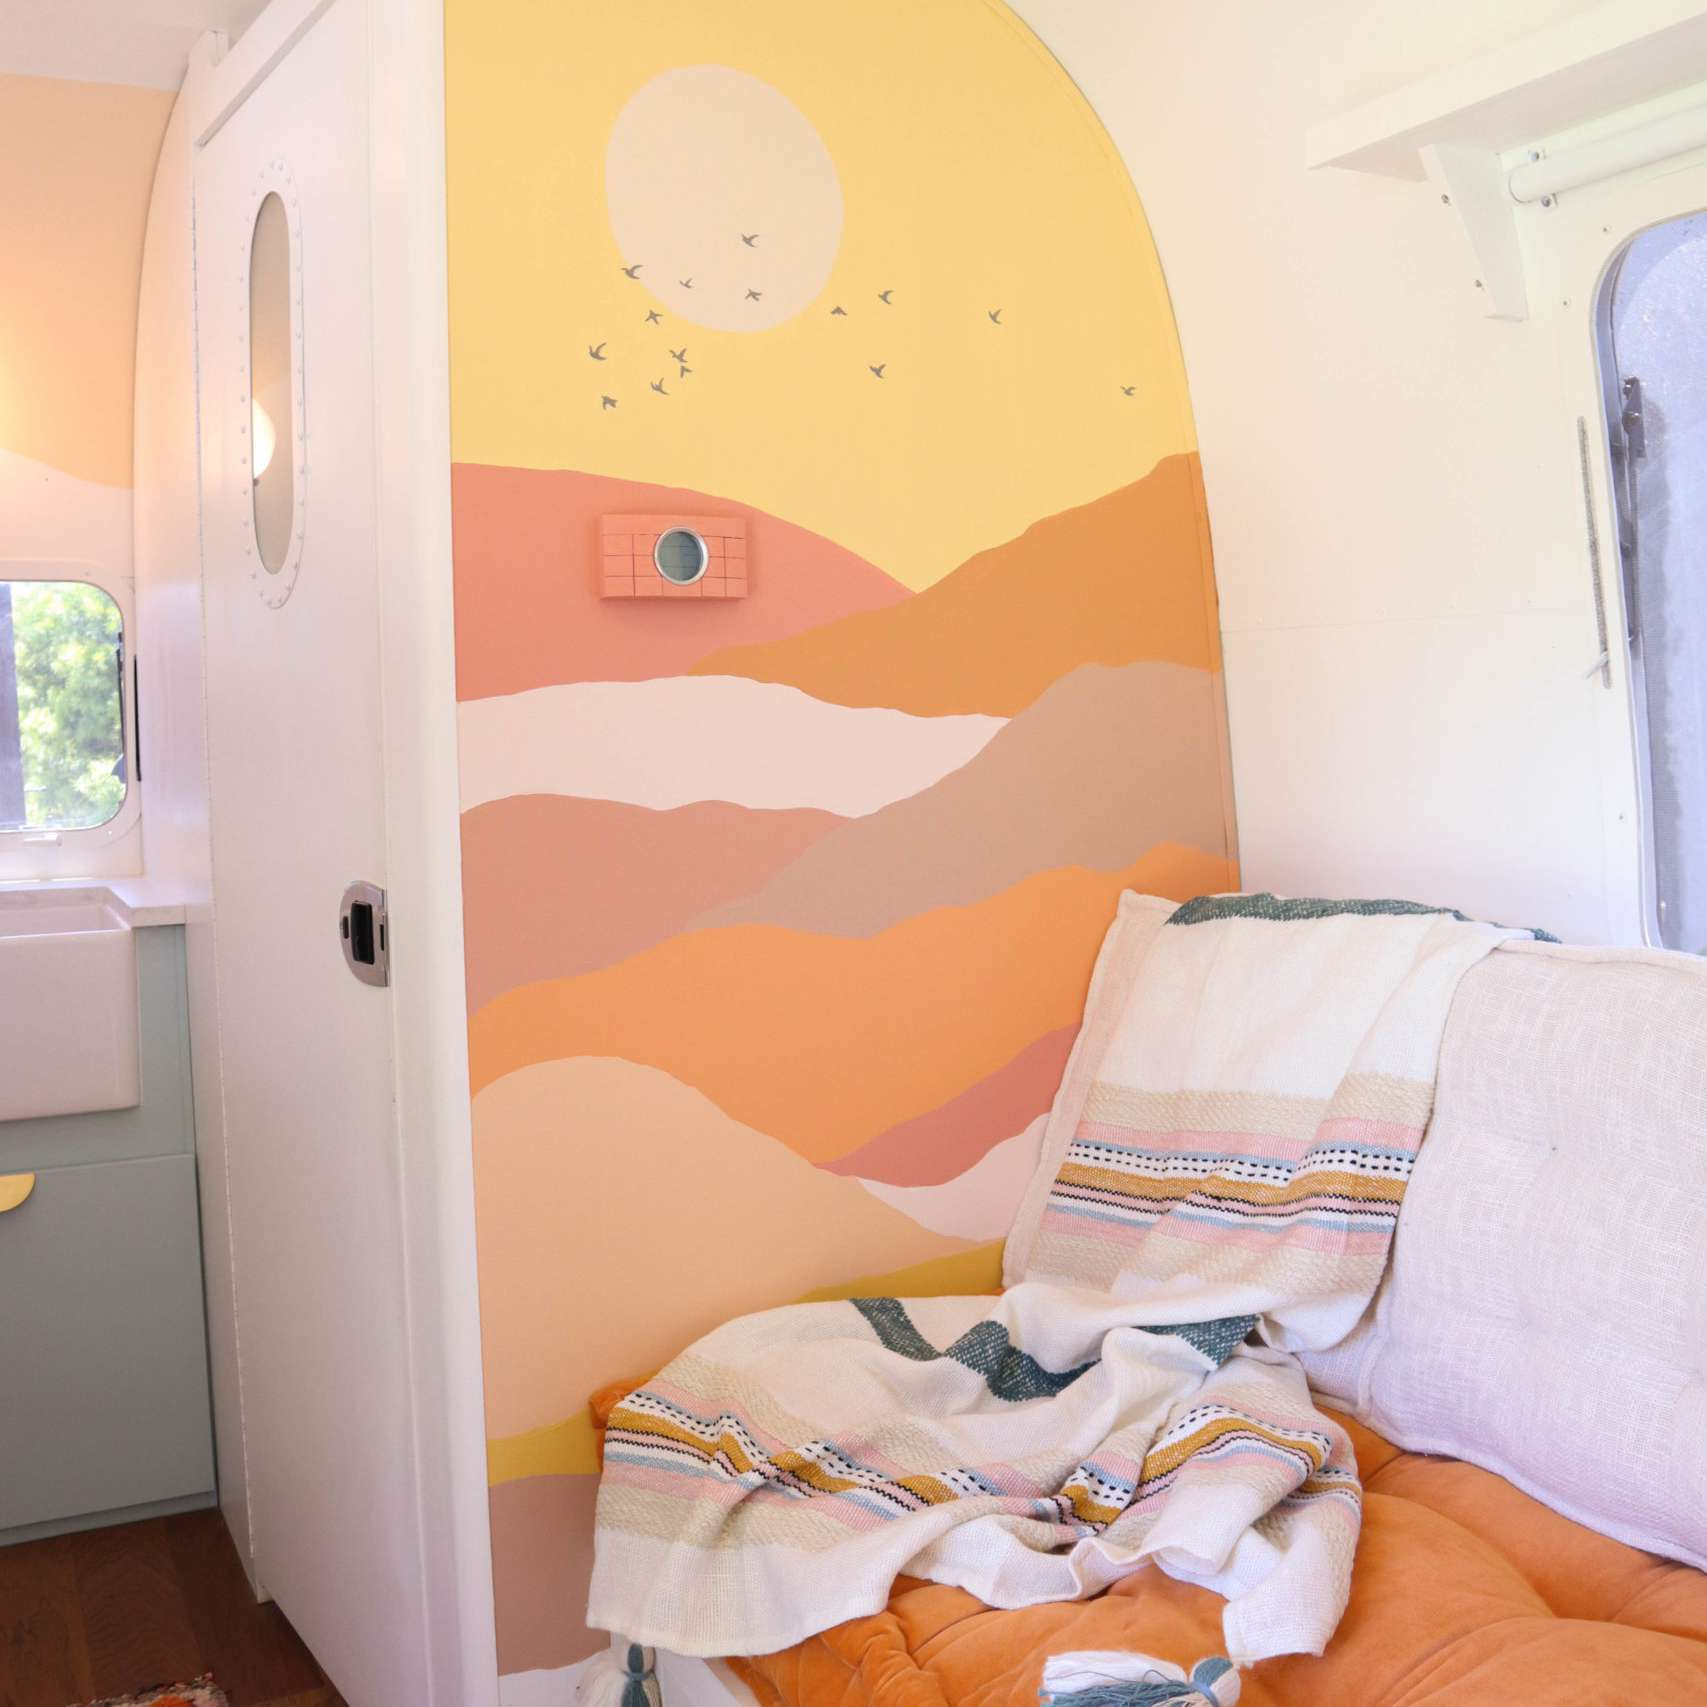 Mural wall of sunset and soft couch.